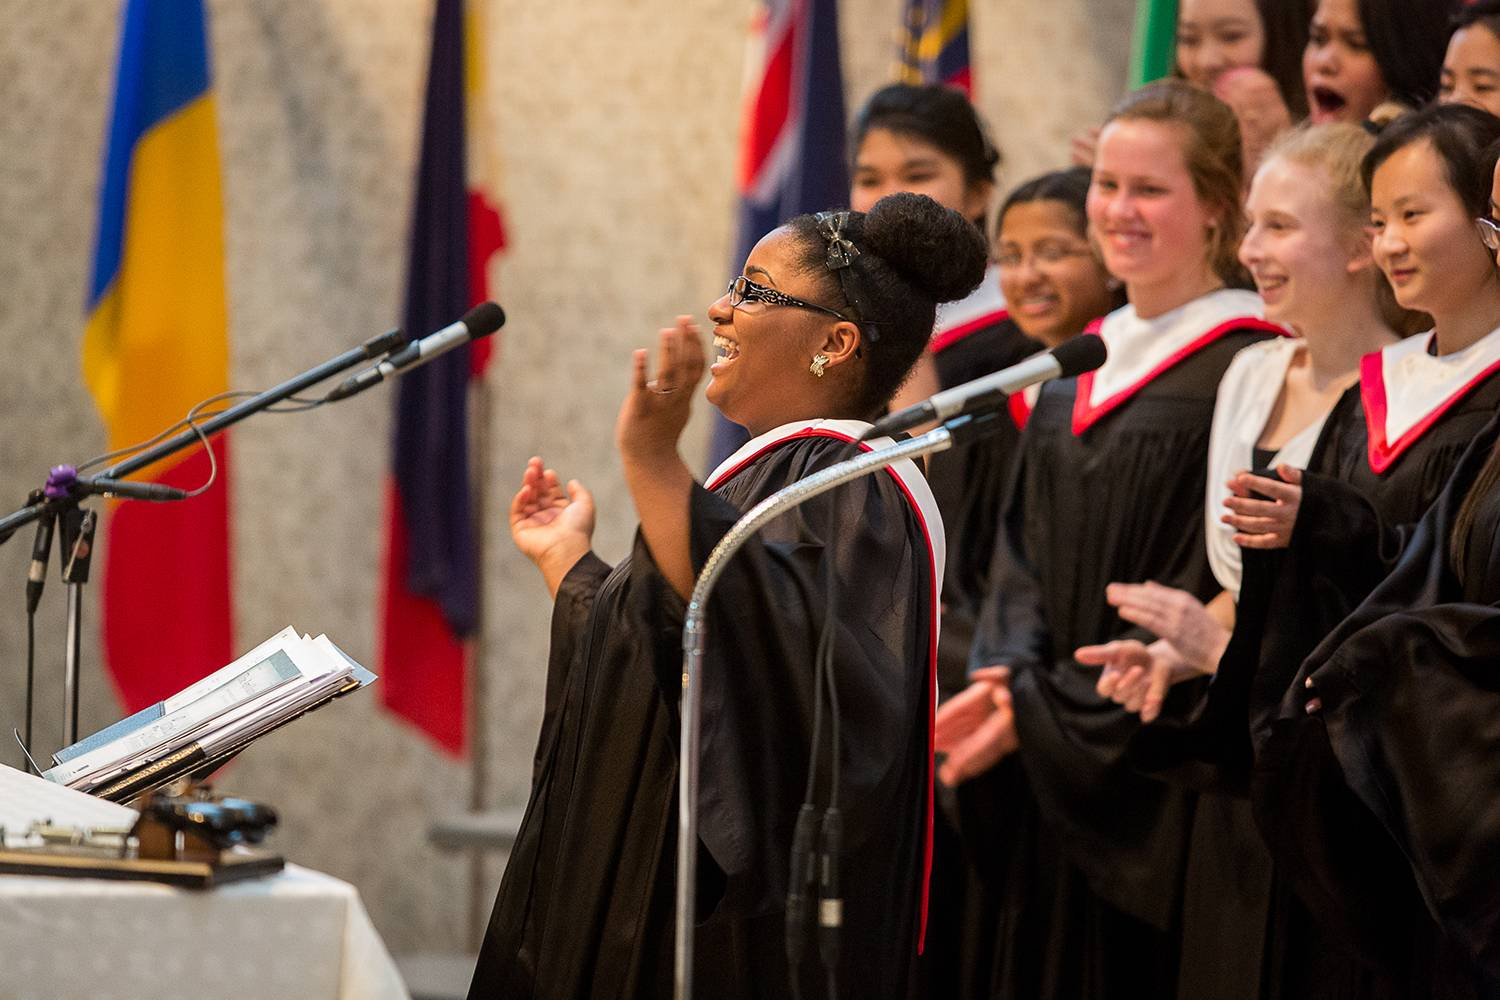 Performances by award-winning choral groups are among the many things to see and hear during Fine Arts Evening at Woodlands Academy of the Sacred Heart in Lake Forest. This annual event showcases student expression via visual art forms, music and choreography. It's open to the public free of charge from 6 to 8:30 p.m. Wednesday, May 14.Woodlands Academy